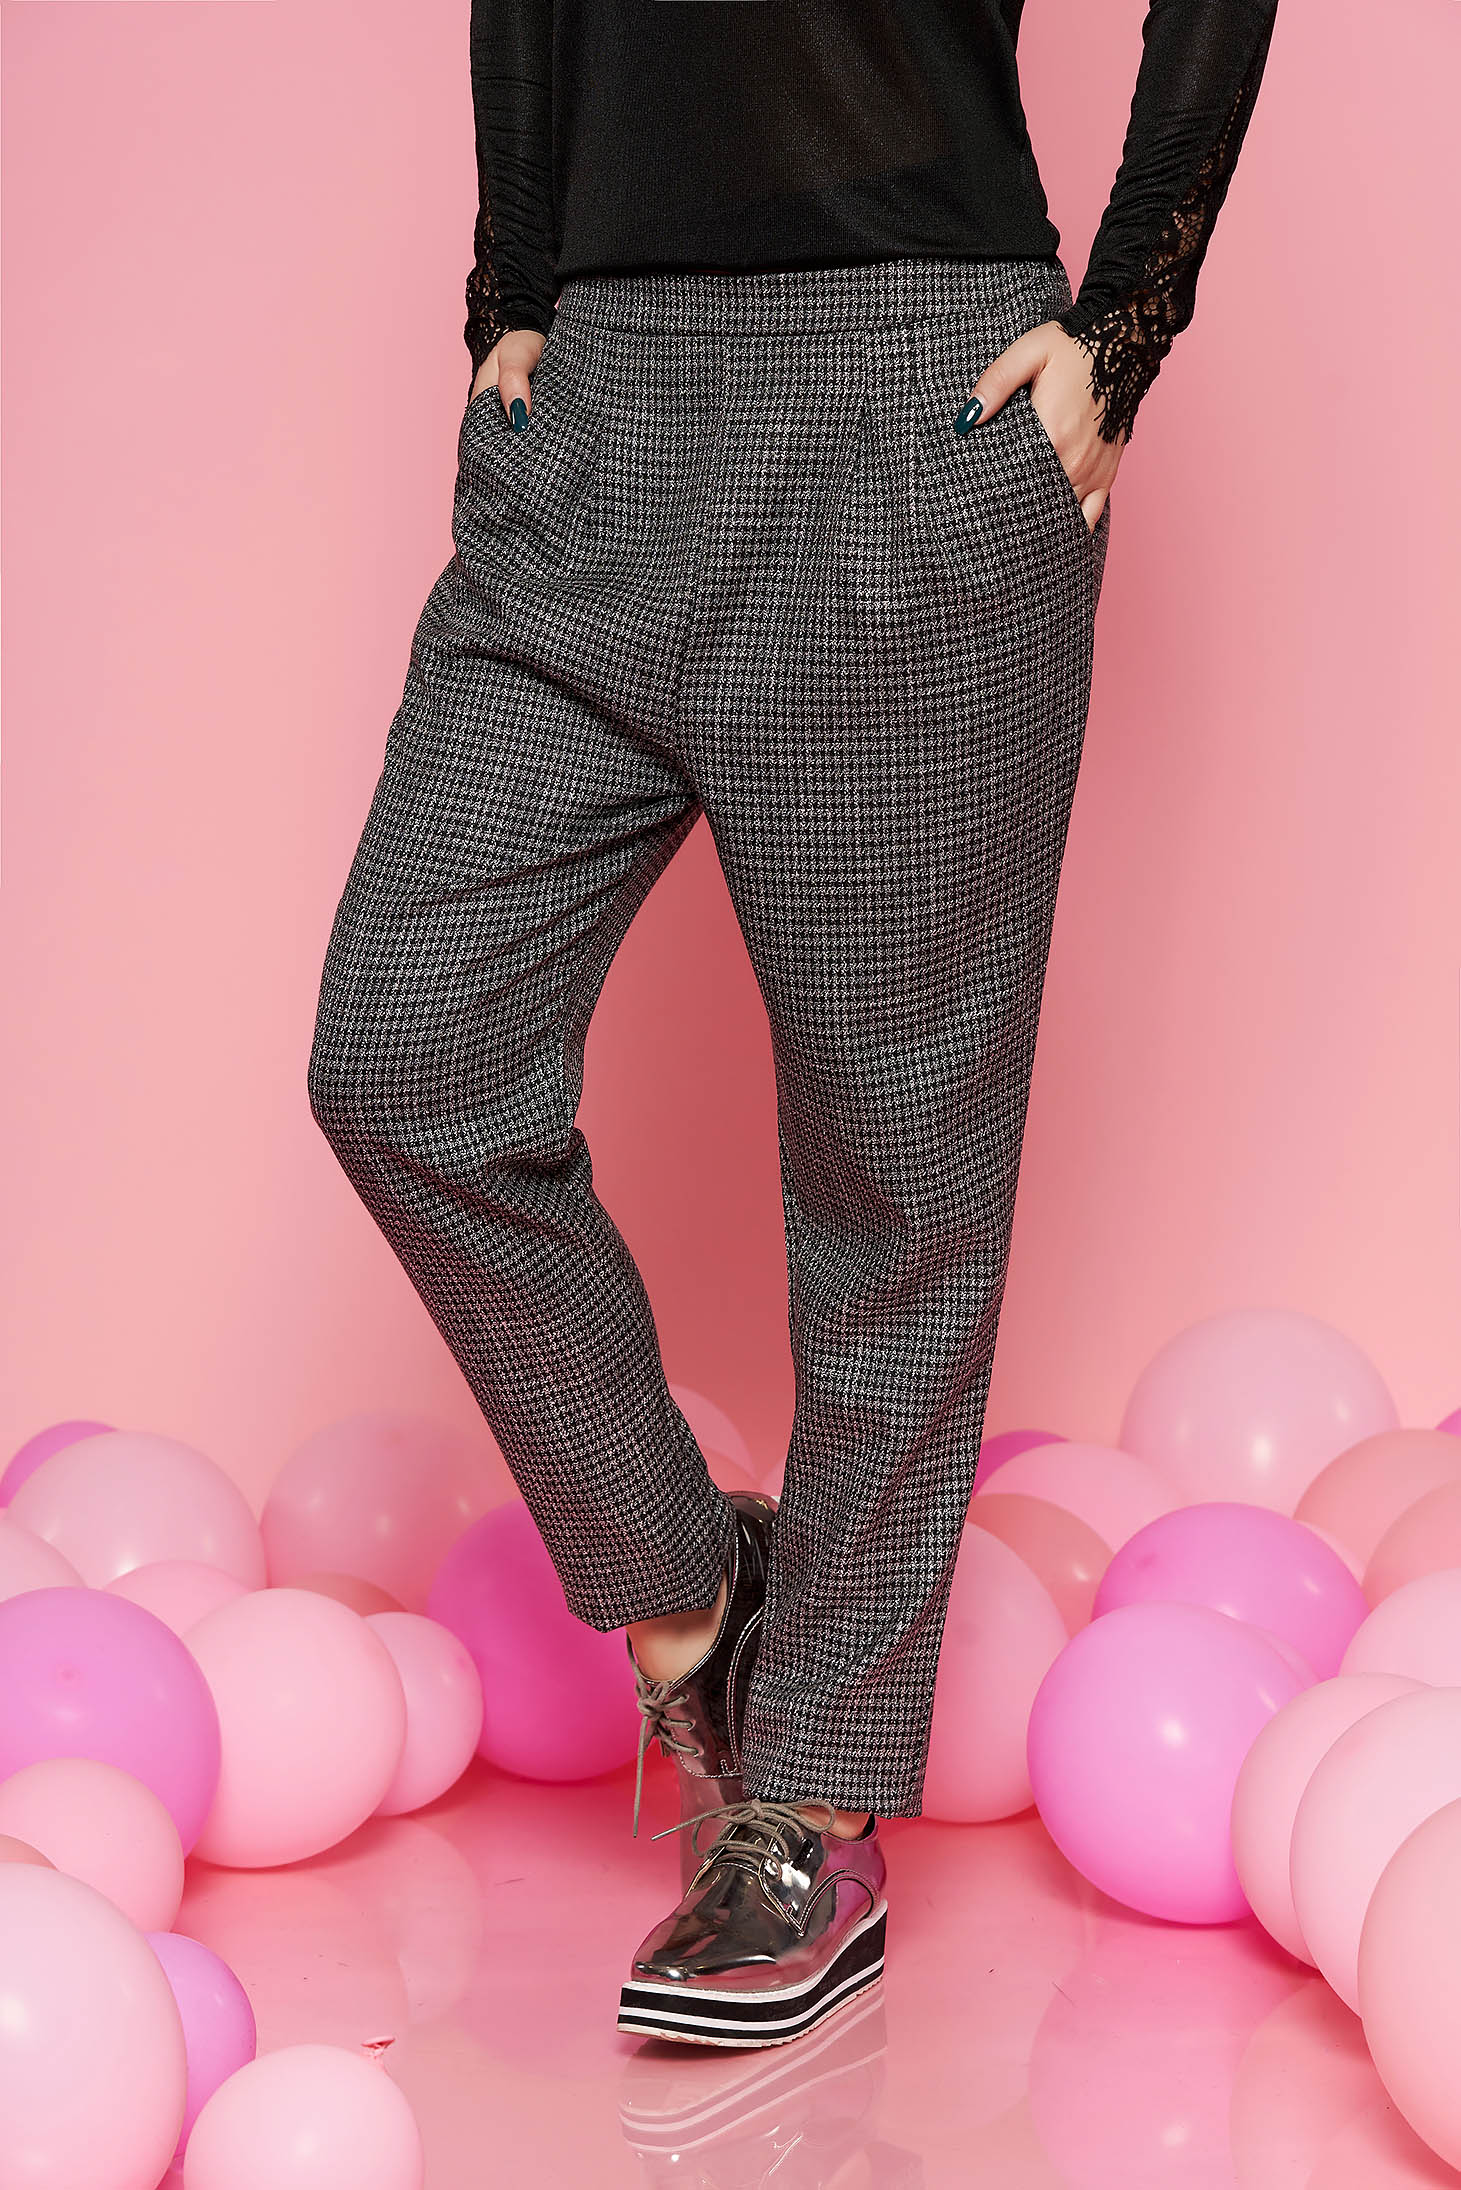 Fofy grey conical office trousers slightly elastic fabric with pockets with medium waist